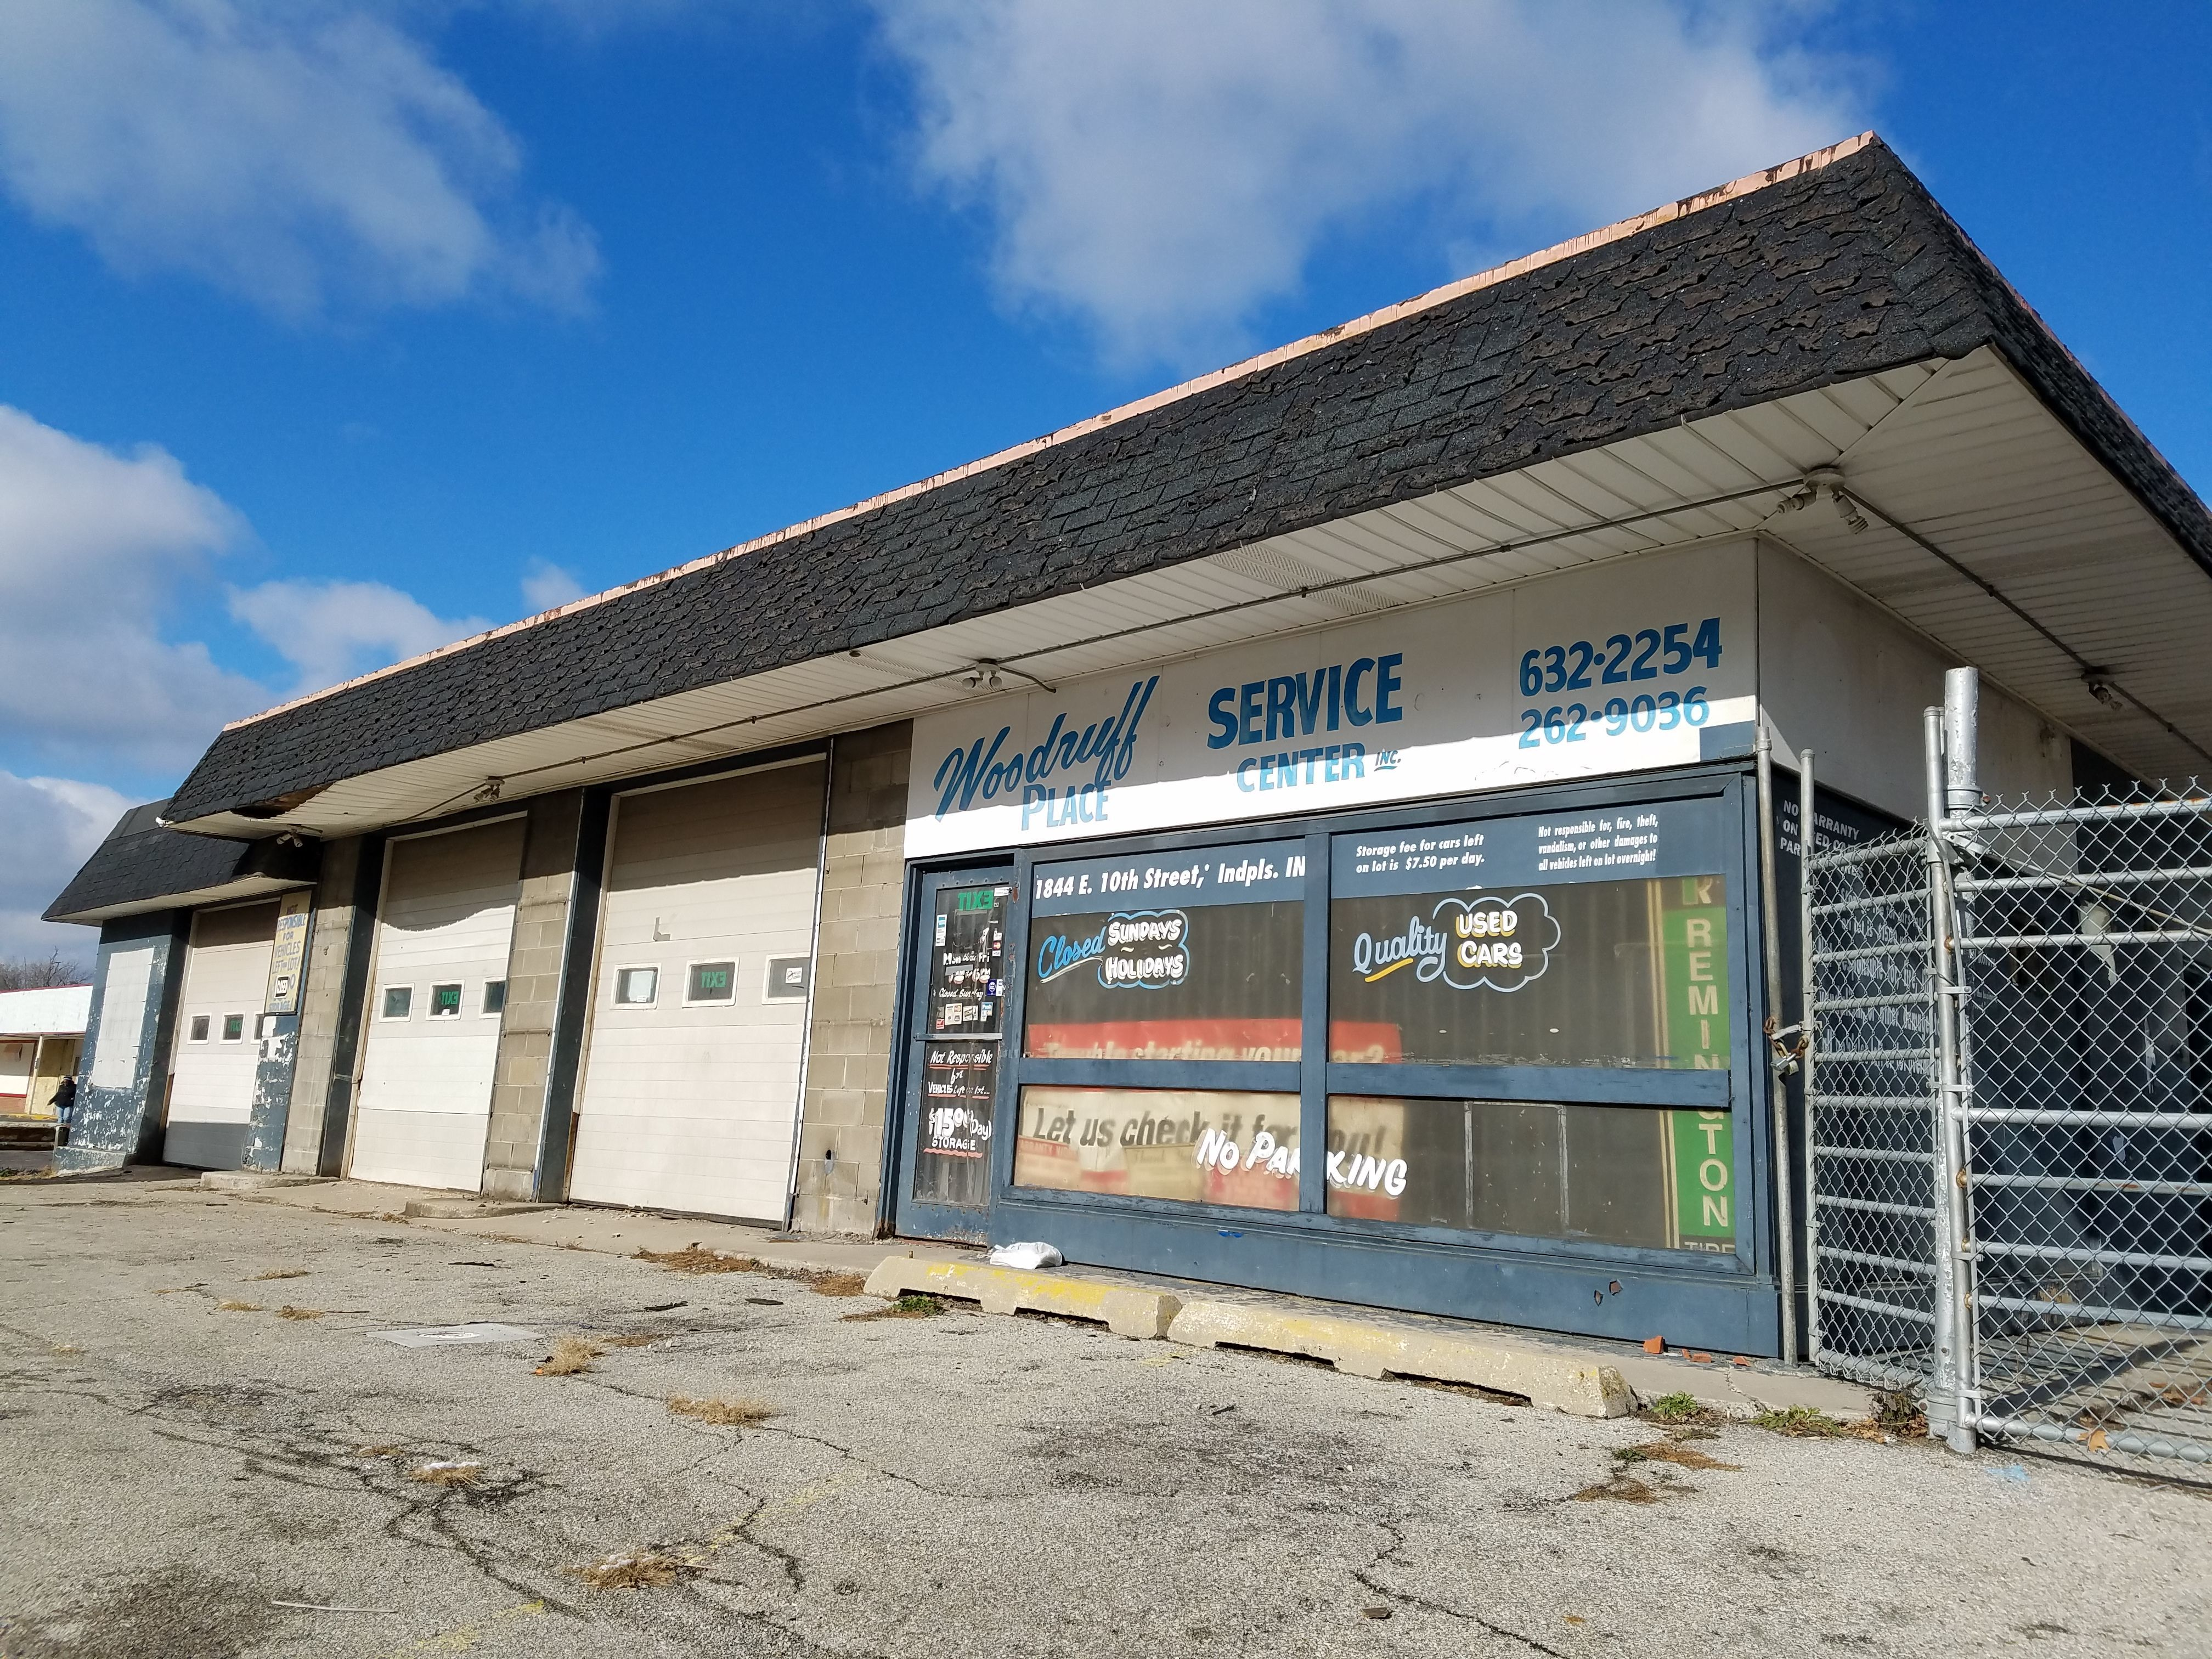 Chef Jonathan Brooks' Beholder restaurant, like his first restaurant Milktooth, is inside a former auto service center. The Beholder location is at the former Woodruff Place Service Center, 1844 E. 10th St.